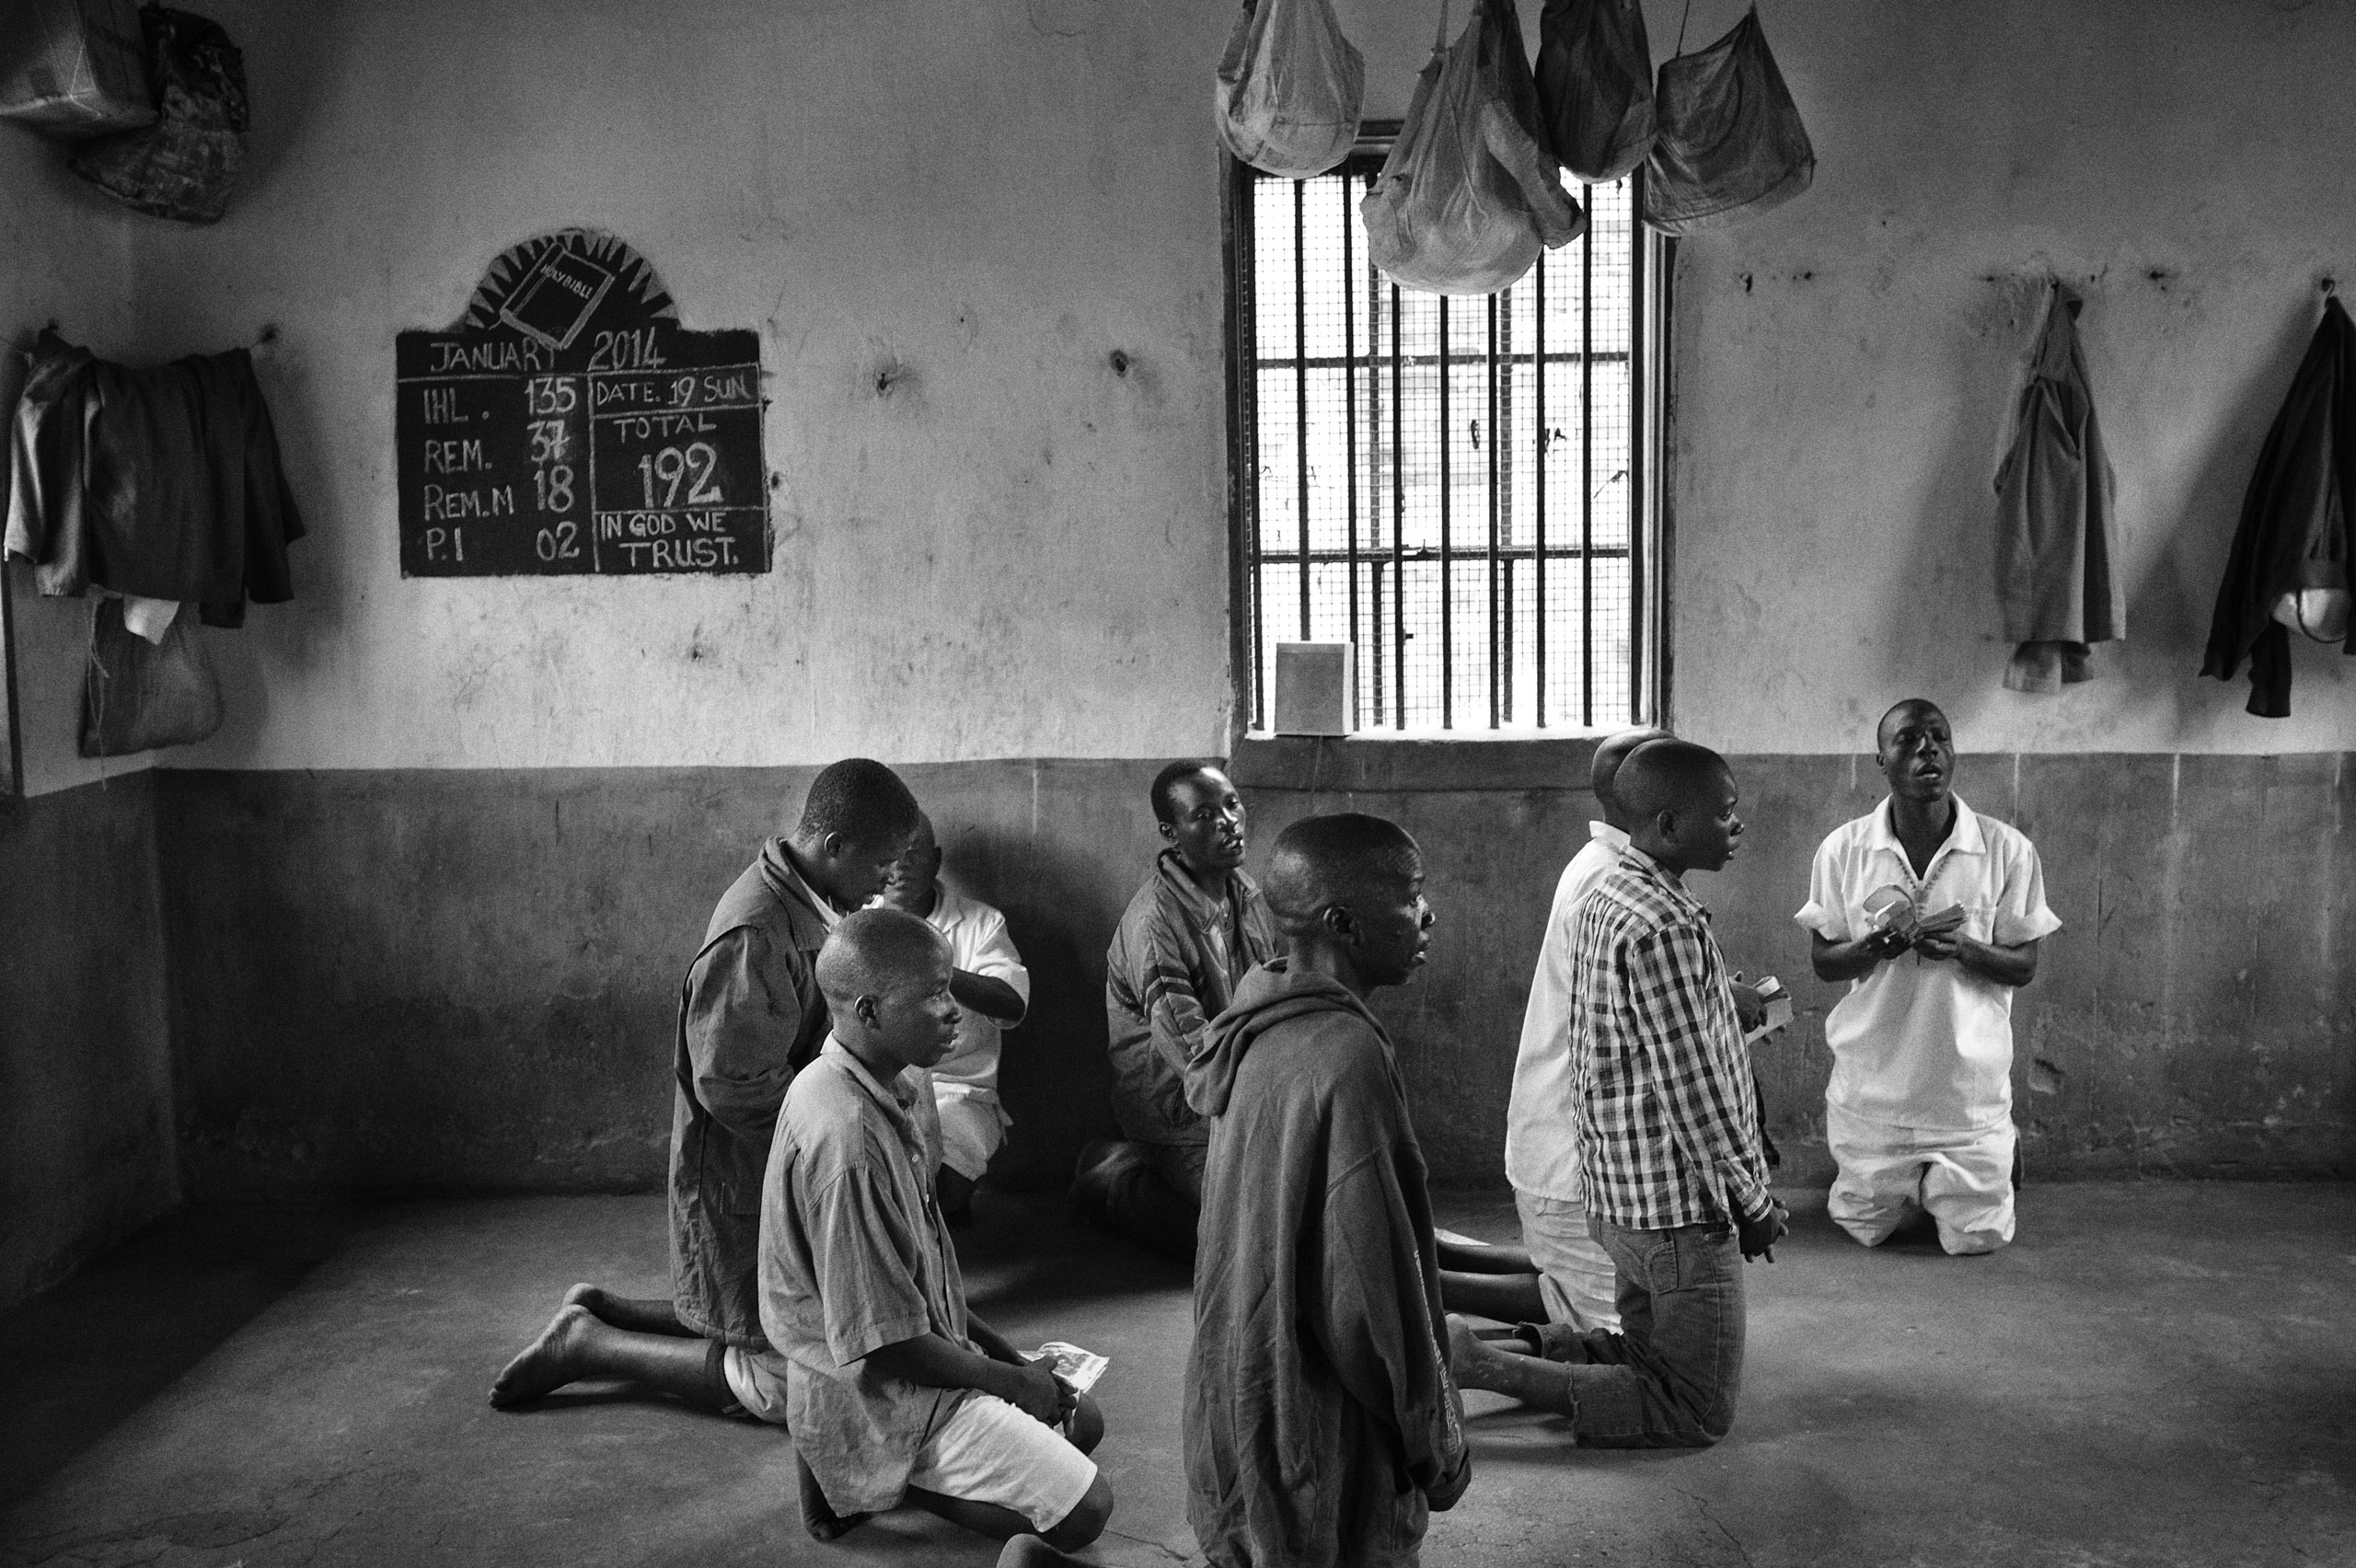 Priests come to the prison to hold church services on Sundays.